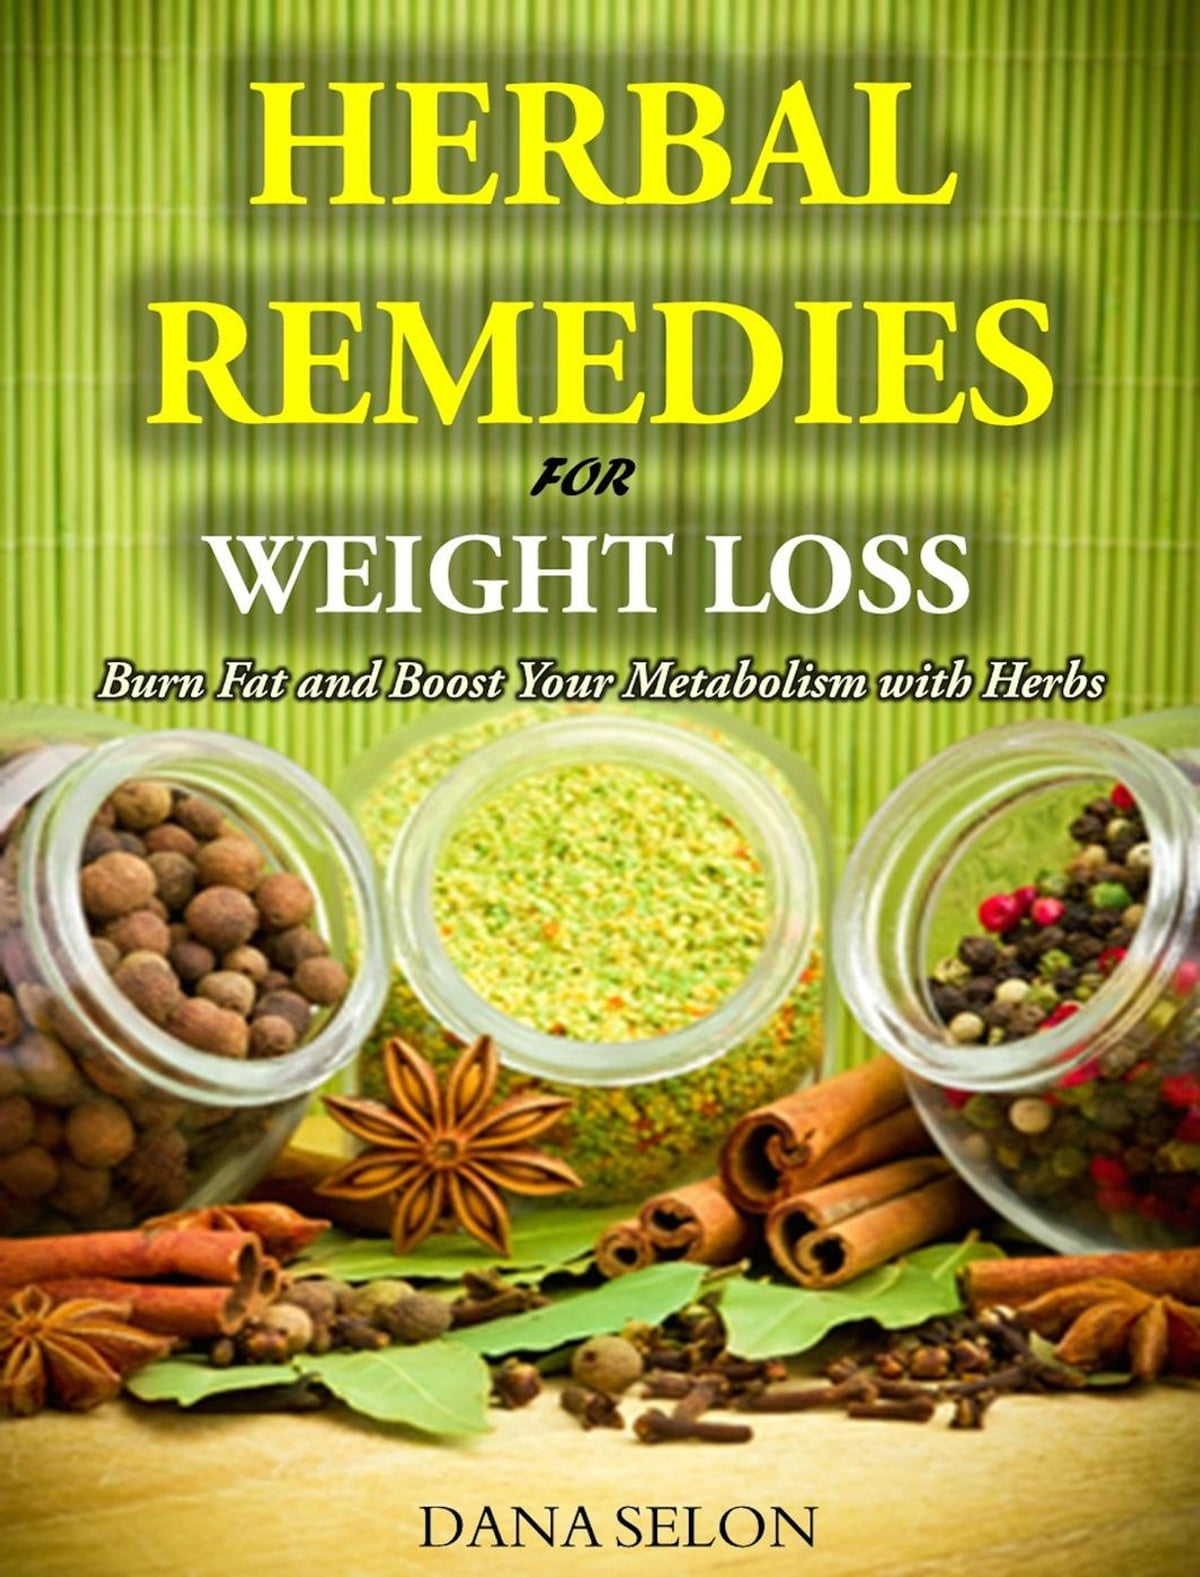 Herbal Remedies For Weight Loss Burn Fat And Boost Your Metabolism Garam With Herbs Ebook By Dana Selon 9781519944849 Rakuten Kobo